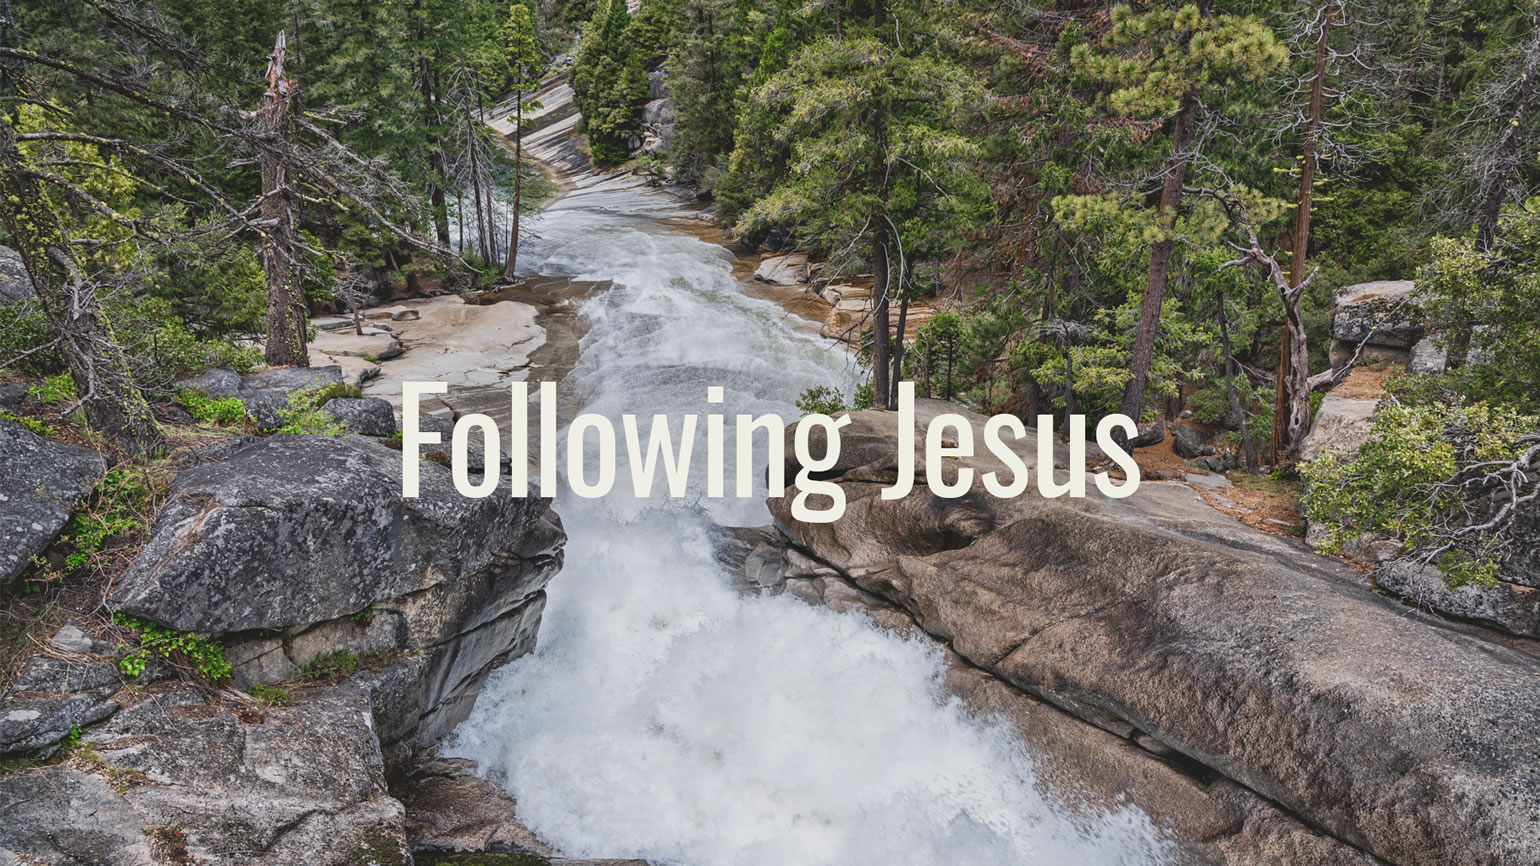 EQUIPPING ONLINE-TITLE-FollowingJesus-1540x866